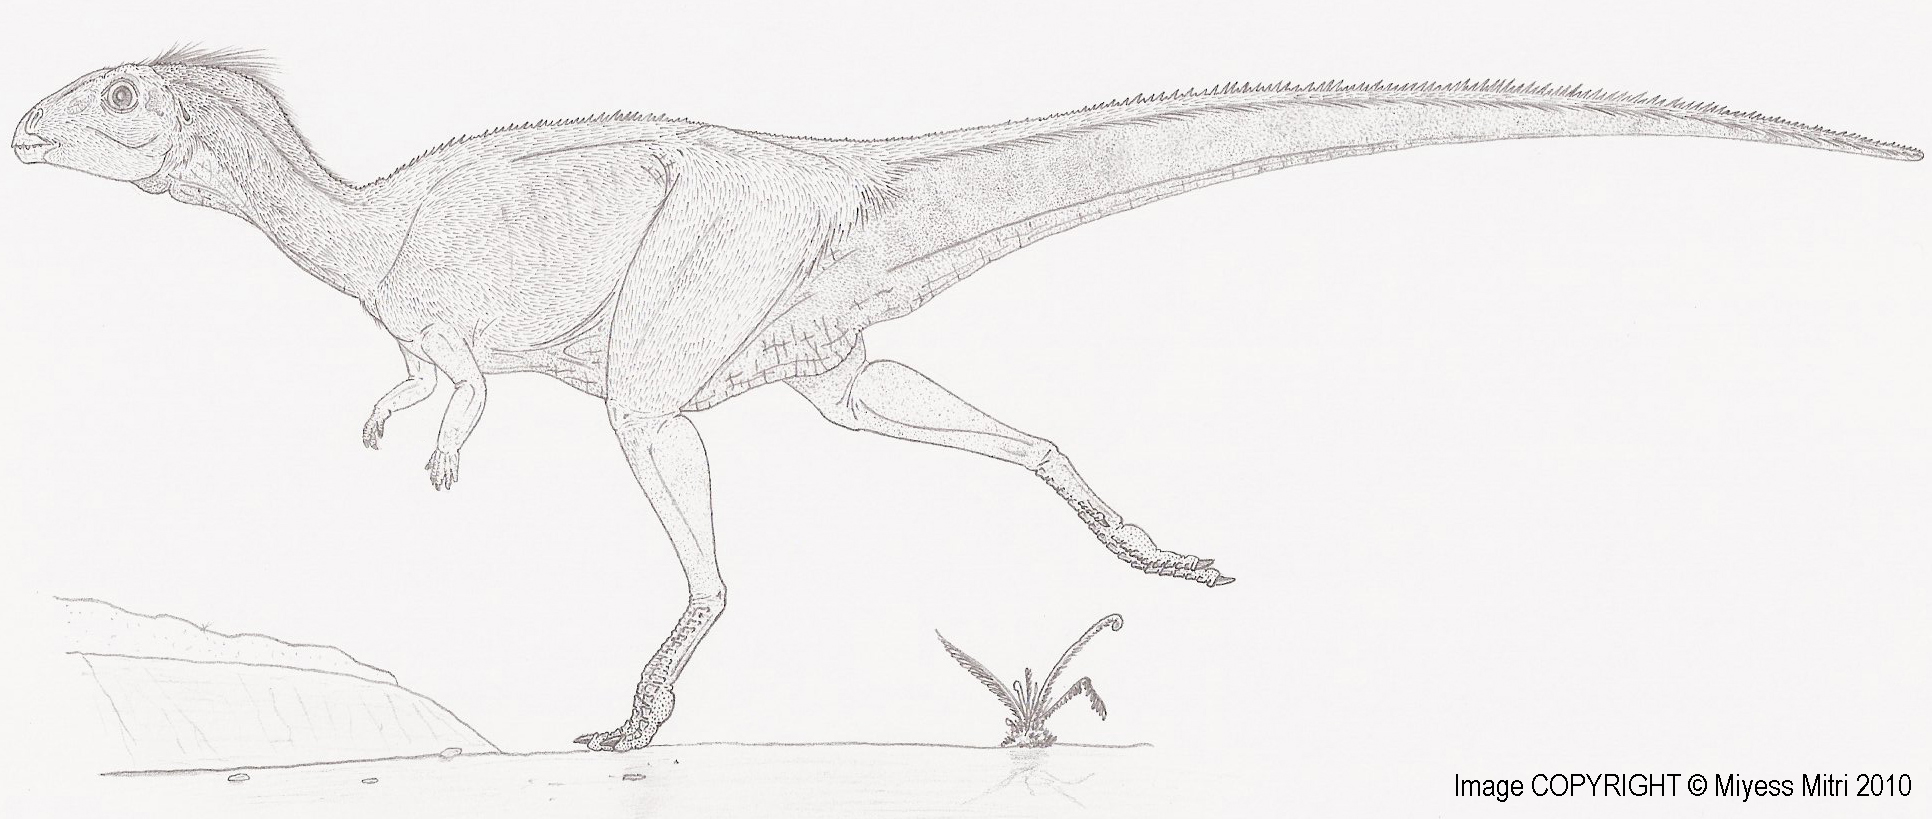 Qantassaurus intrepidus by Miyess